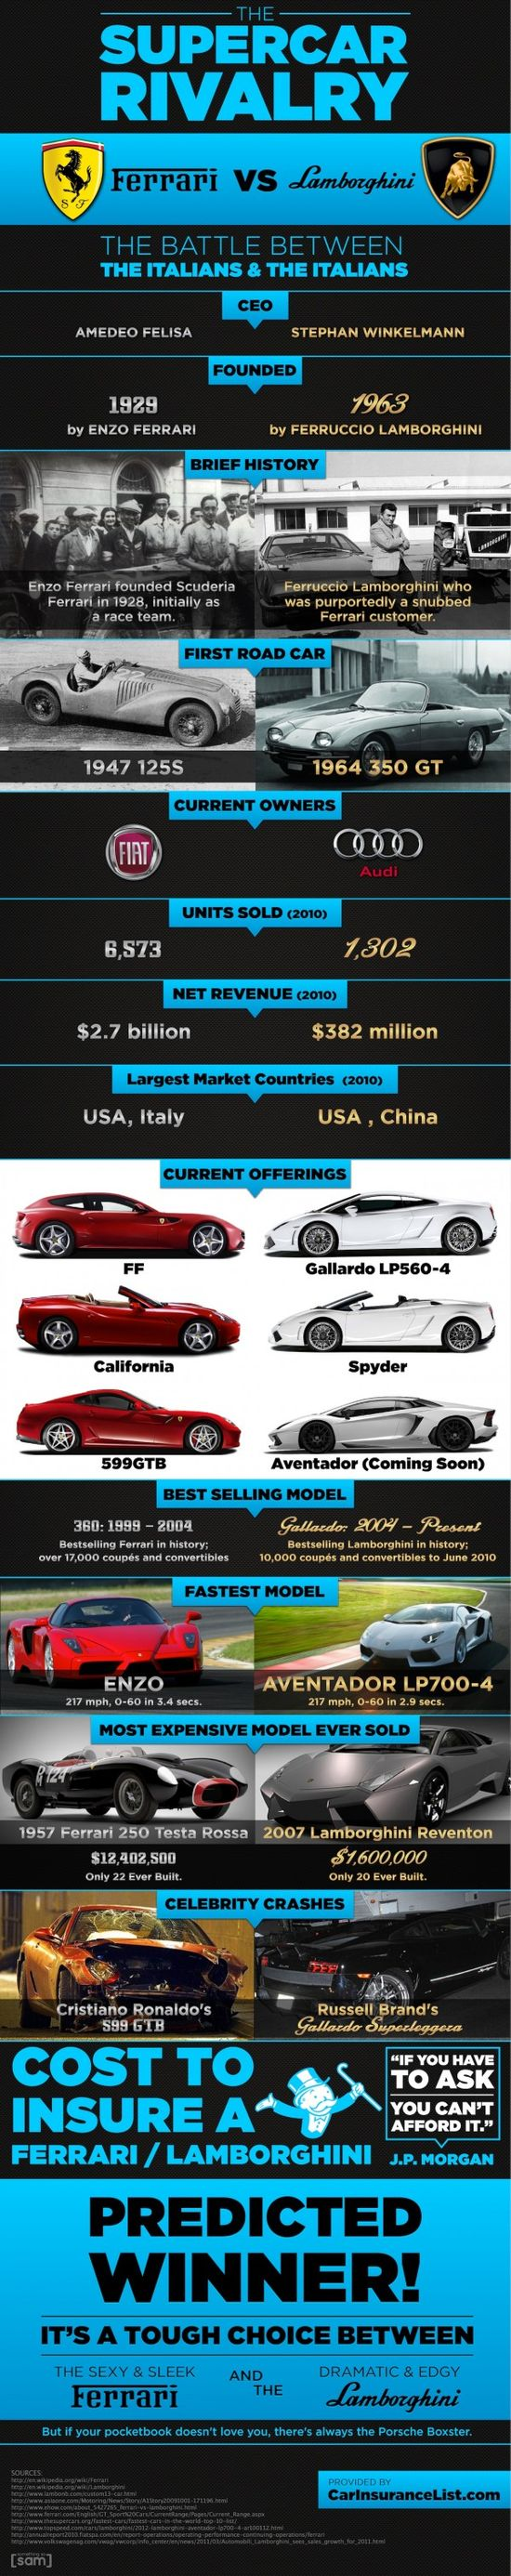 supercar-rivalry-infographic-600x3024.jpg (600×3024)